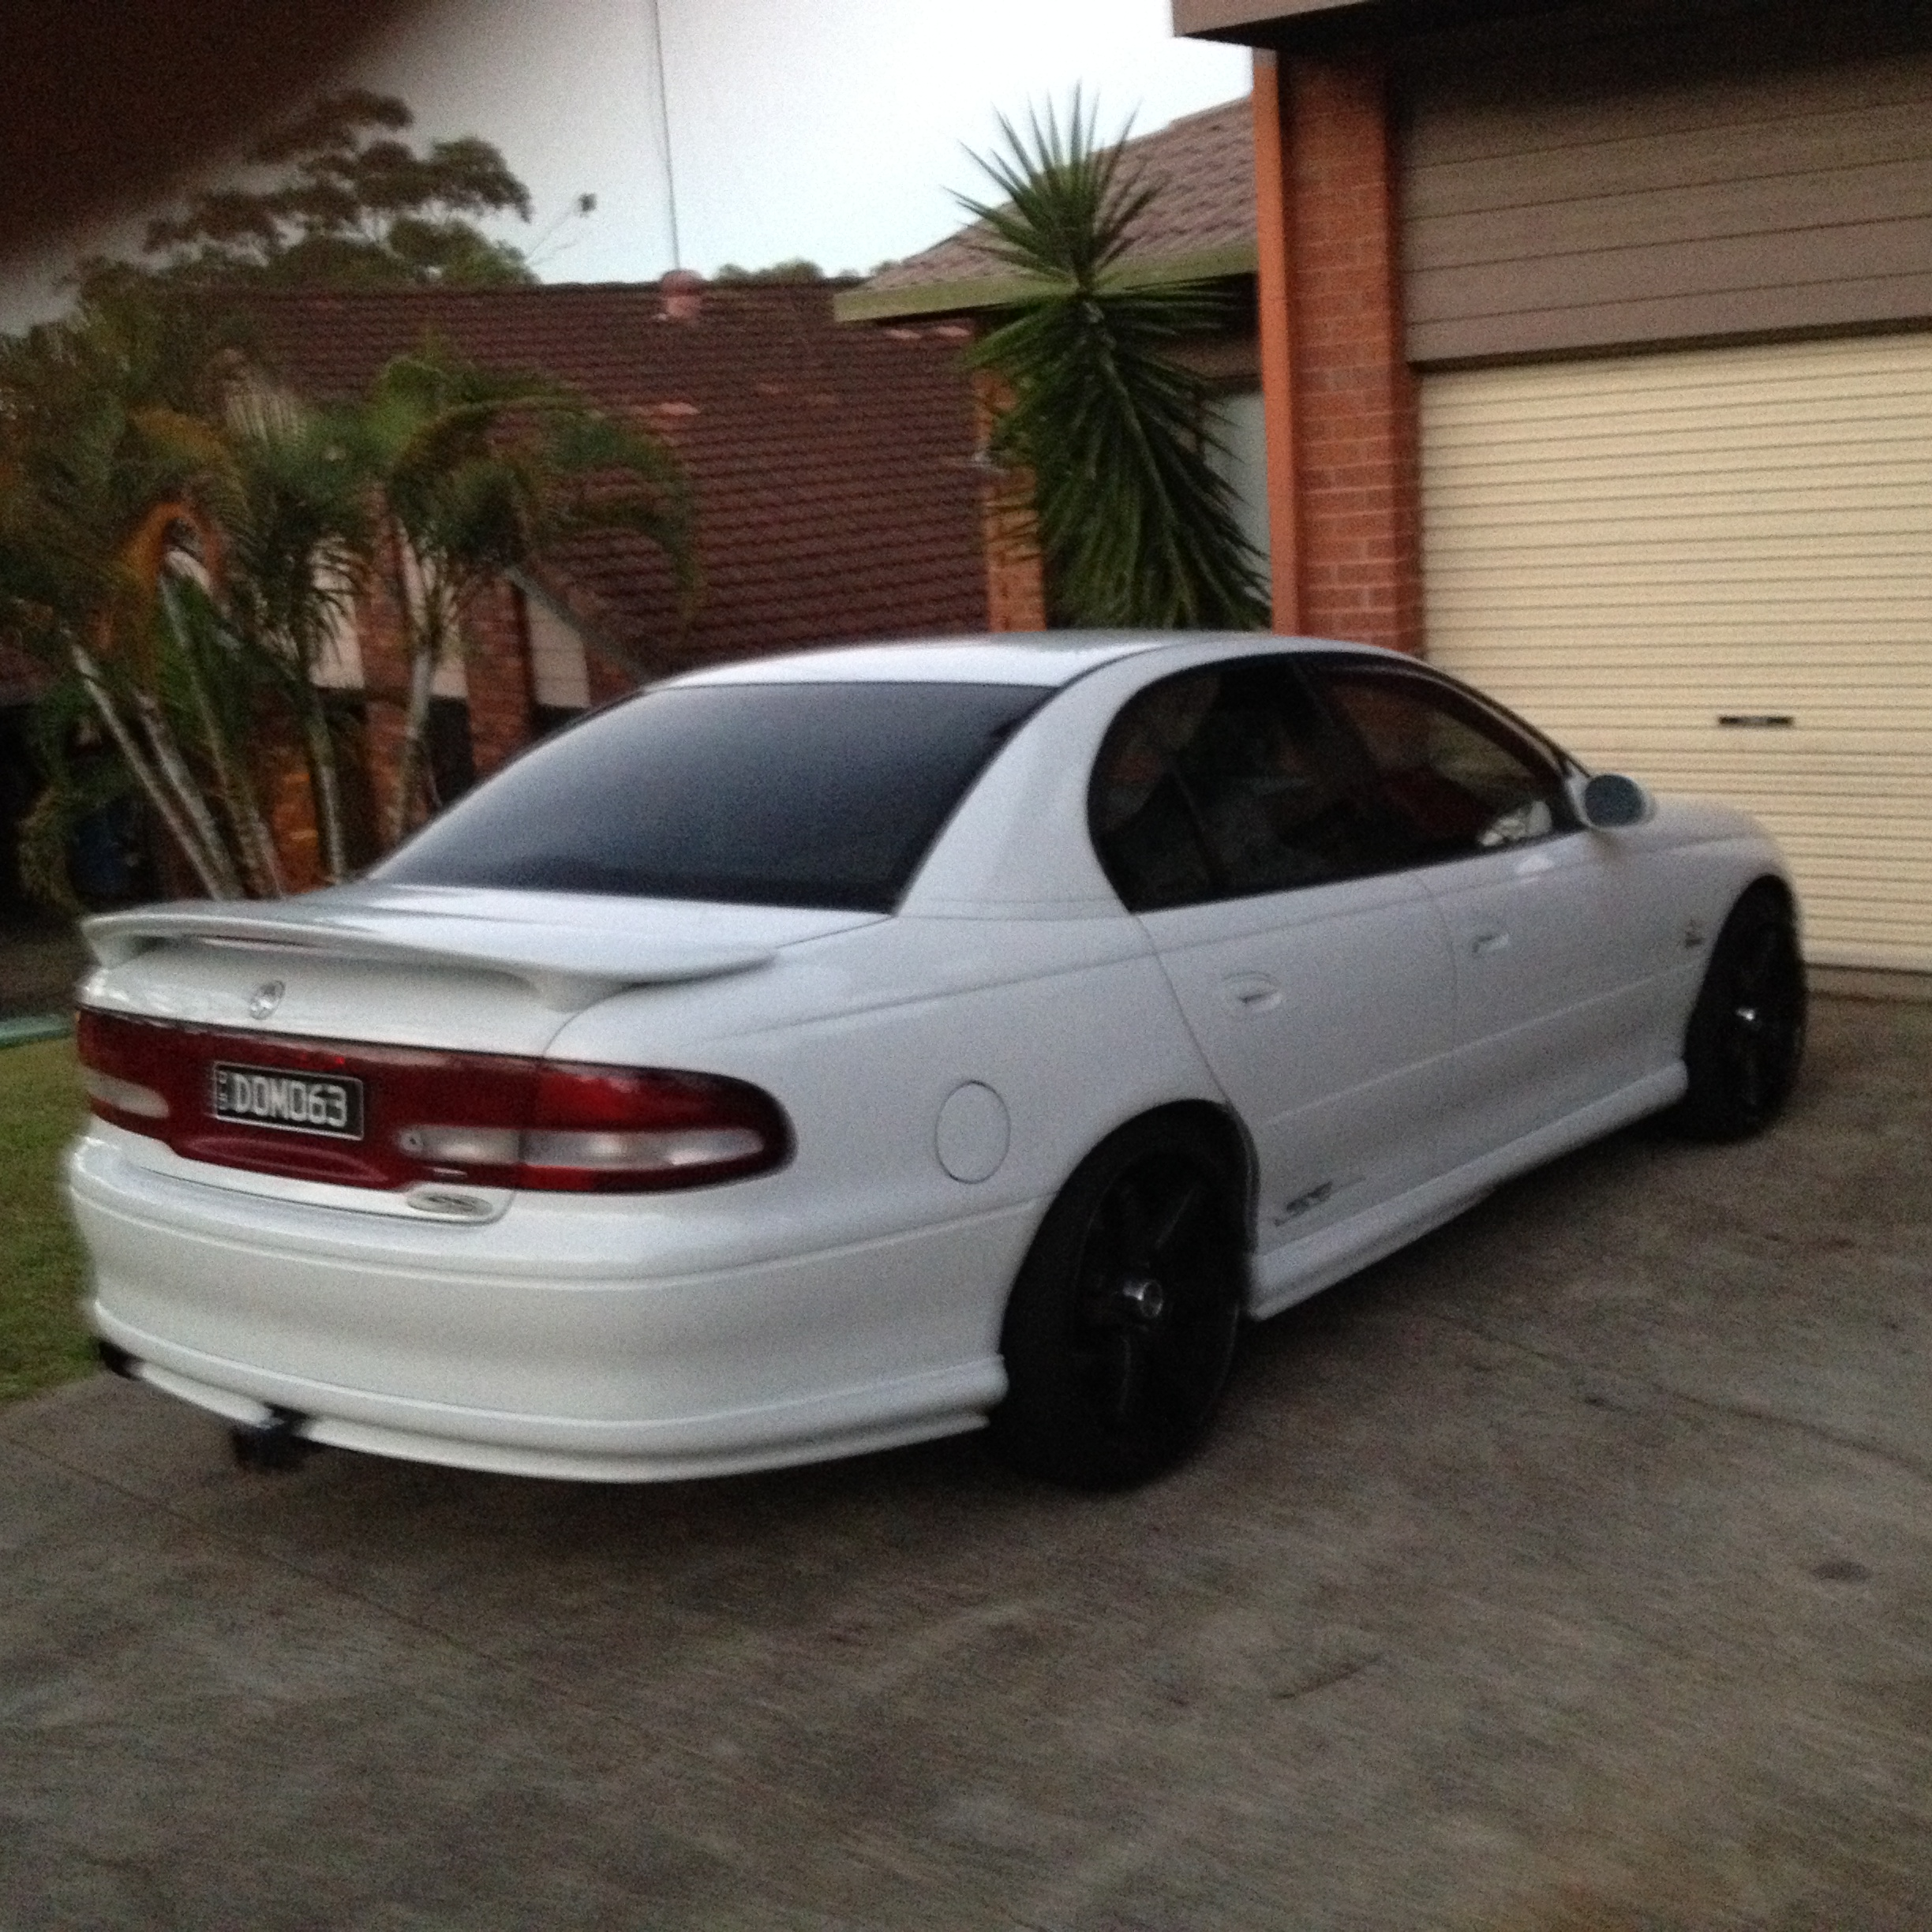 2000 Holden Commodore VT II Sedan 4DR Auto 5.7 For Sale Or